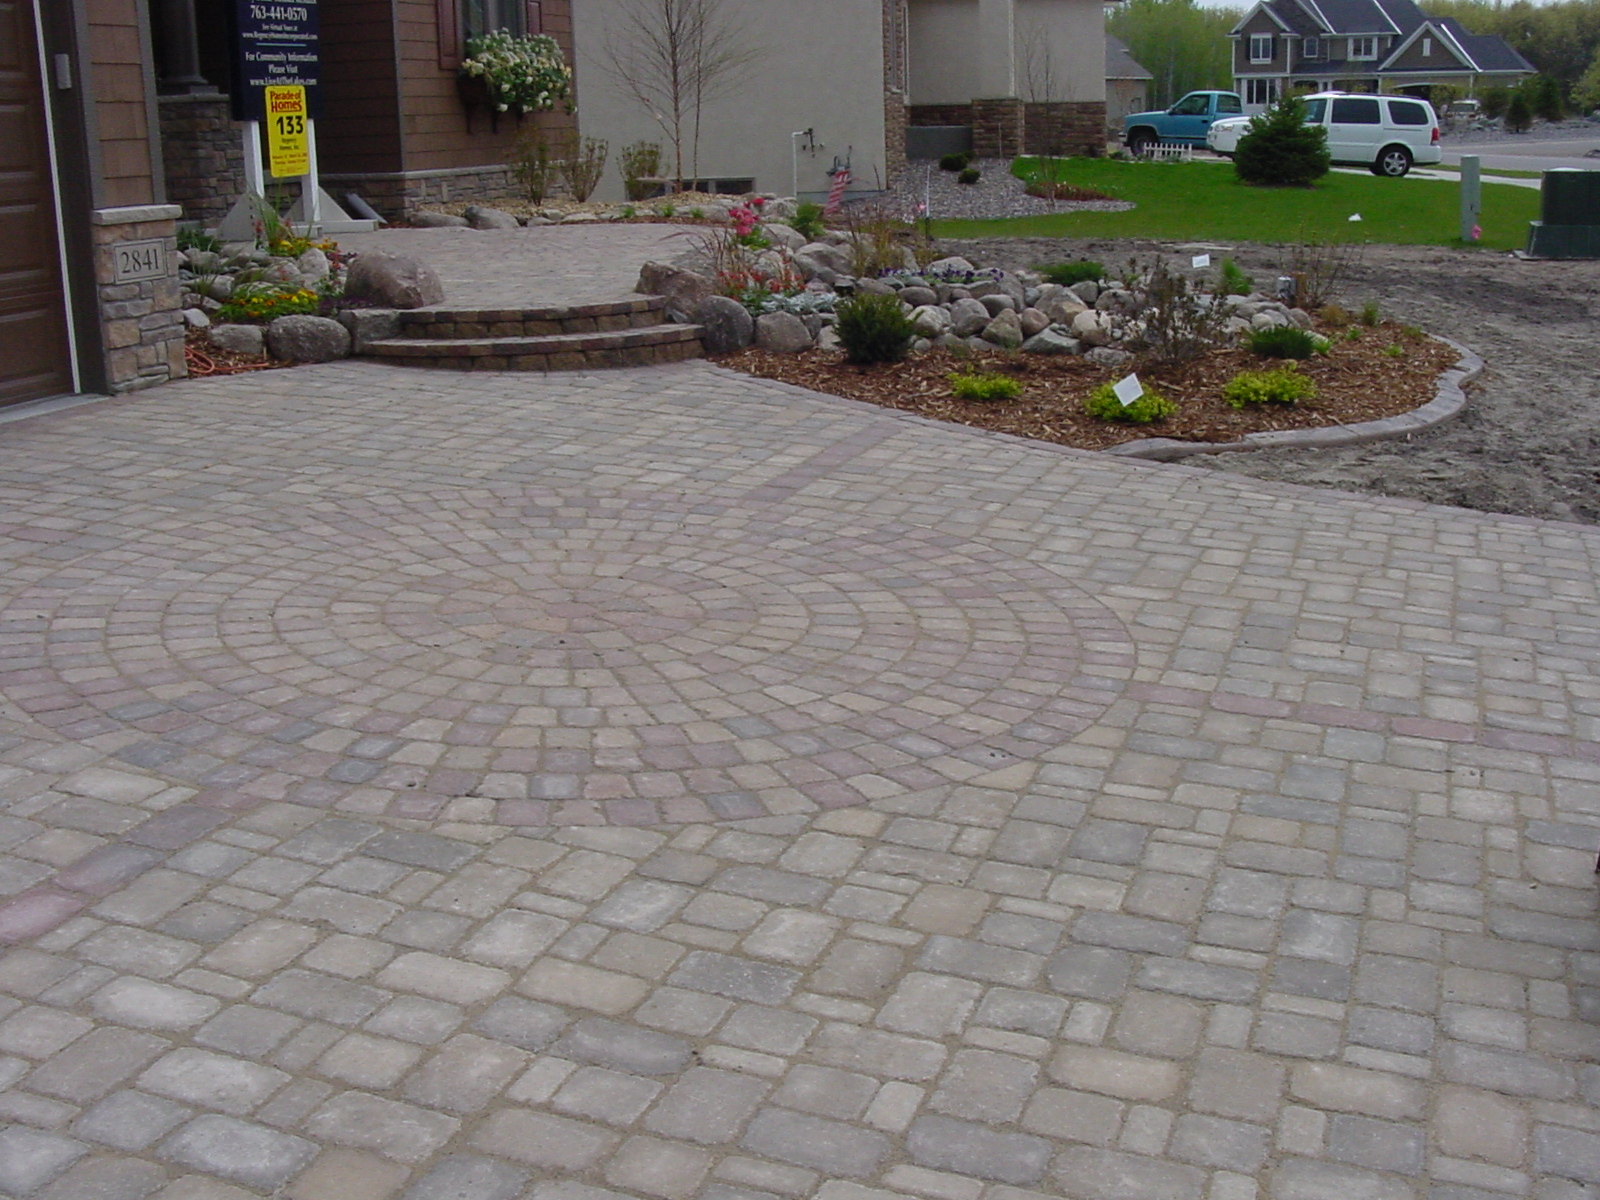 Interlocking Brick Pavers Brick Paver Driveway Permeable Environmentally Friendly Paving